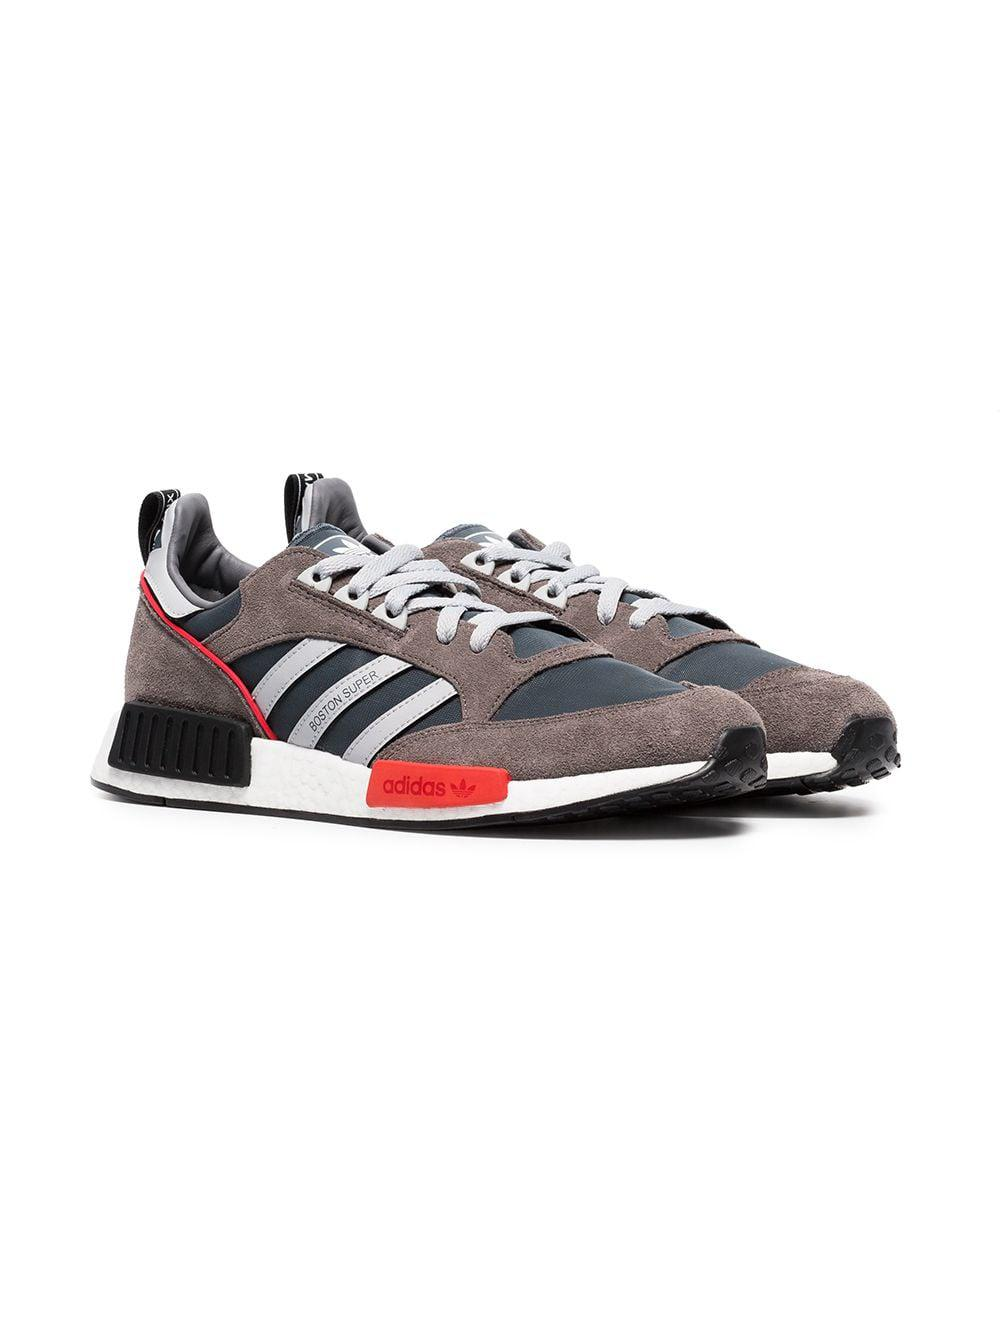 6e4c765d568 Adidas - Gray Never Made Multicoloured Boston Super R1 Suede Sneakers for  Men - Lyst. View fullscreen